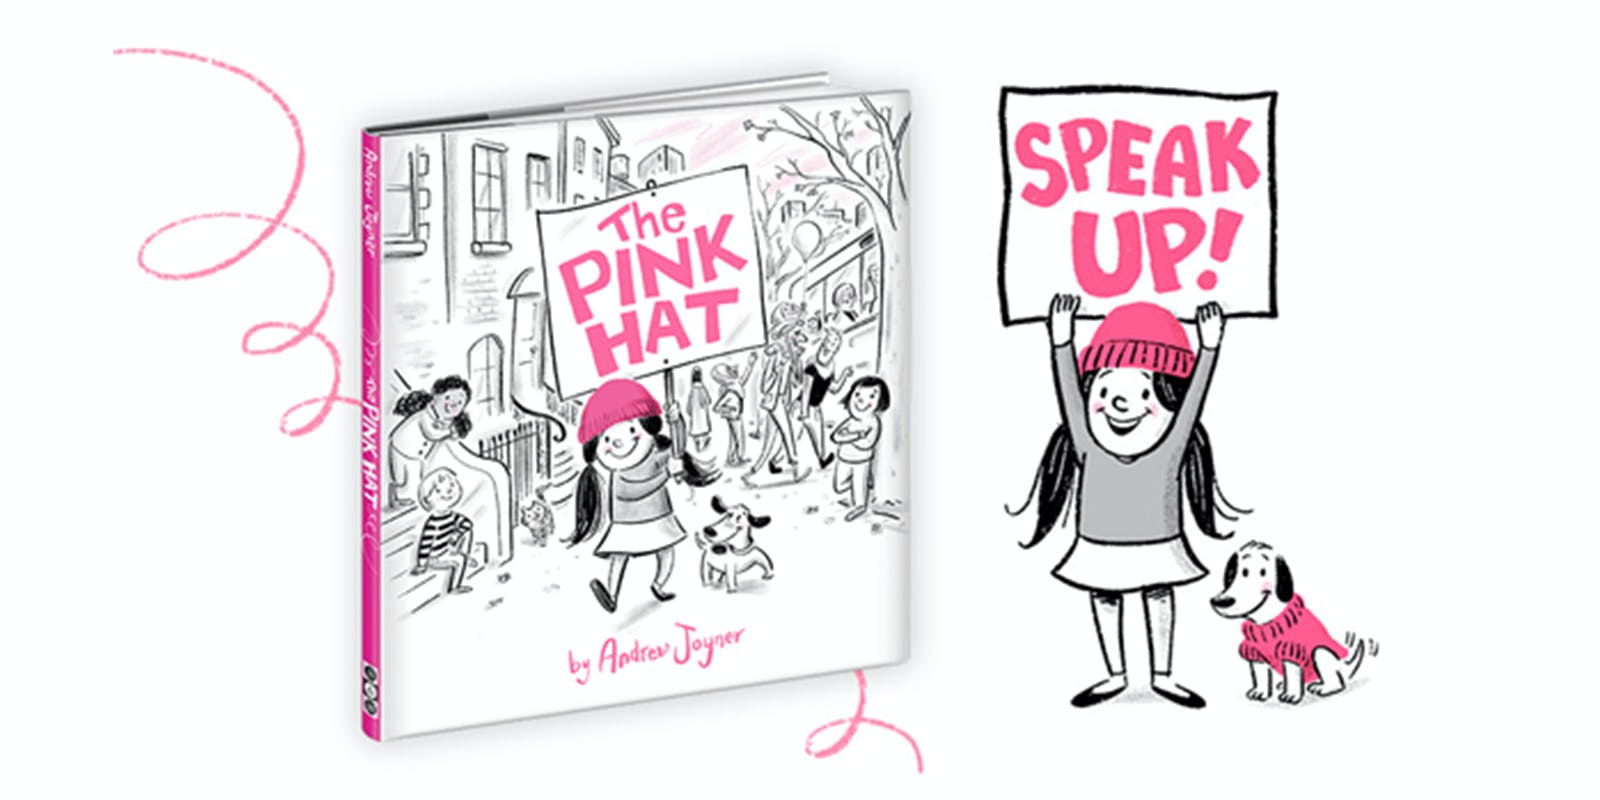 Vibrant picture book a tribute to Women's March